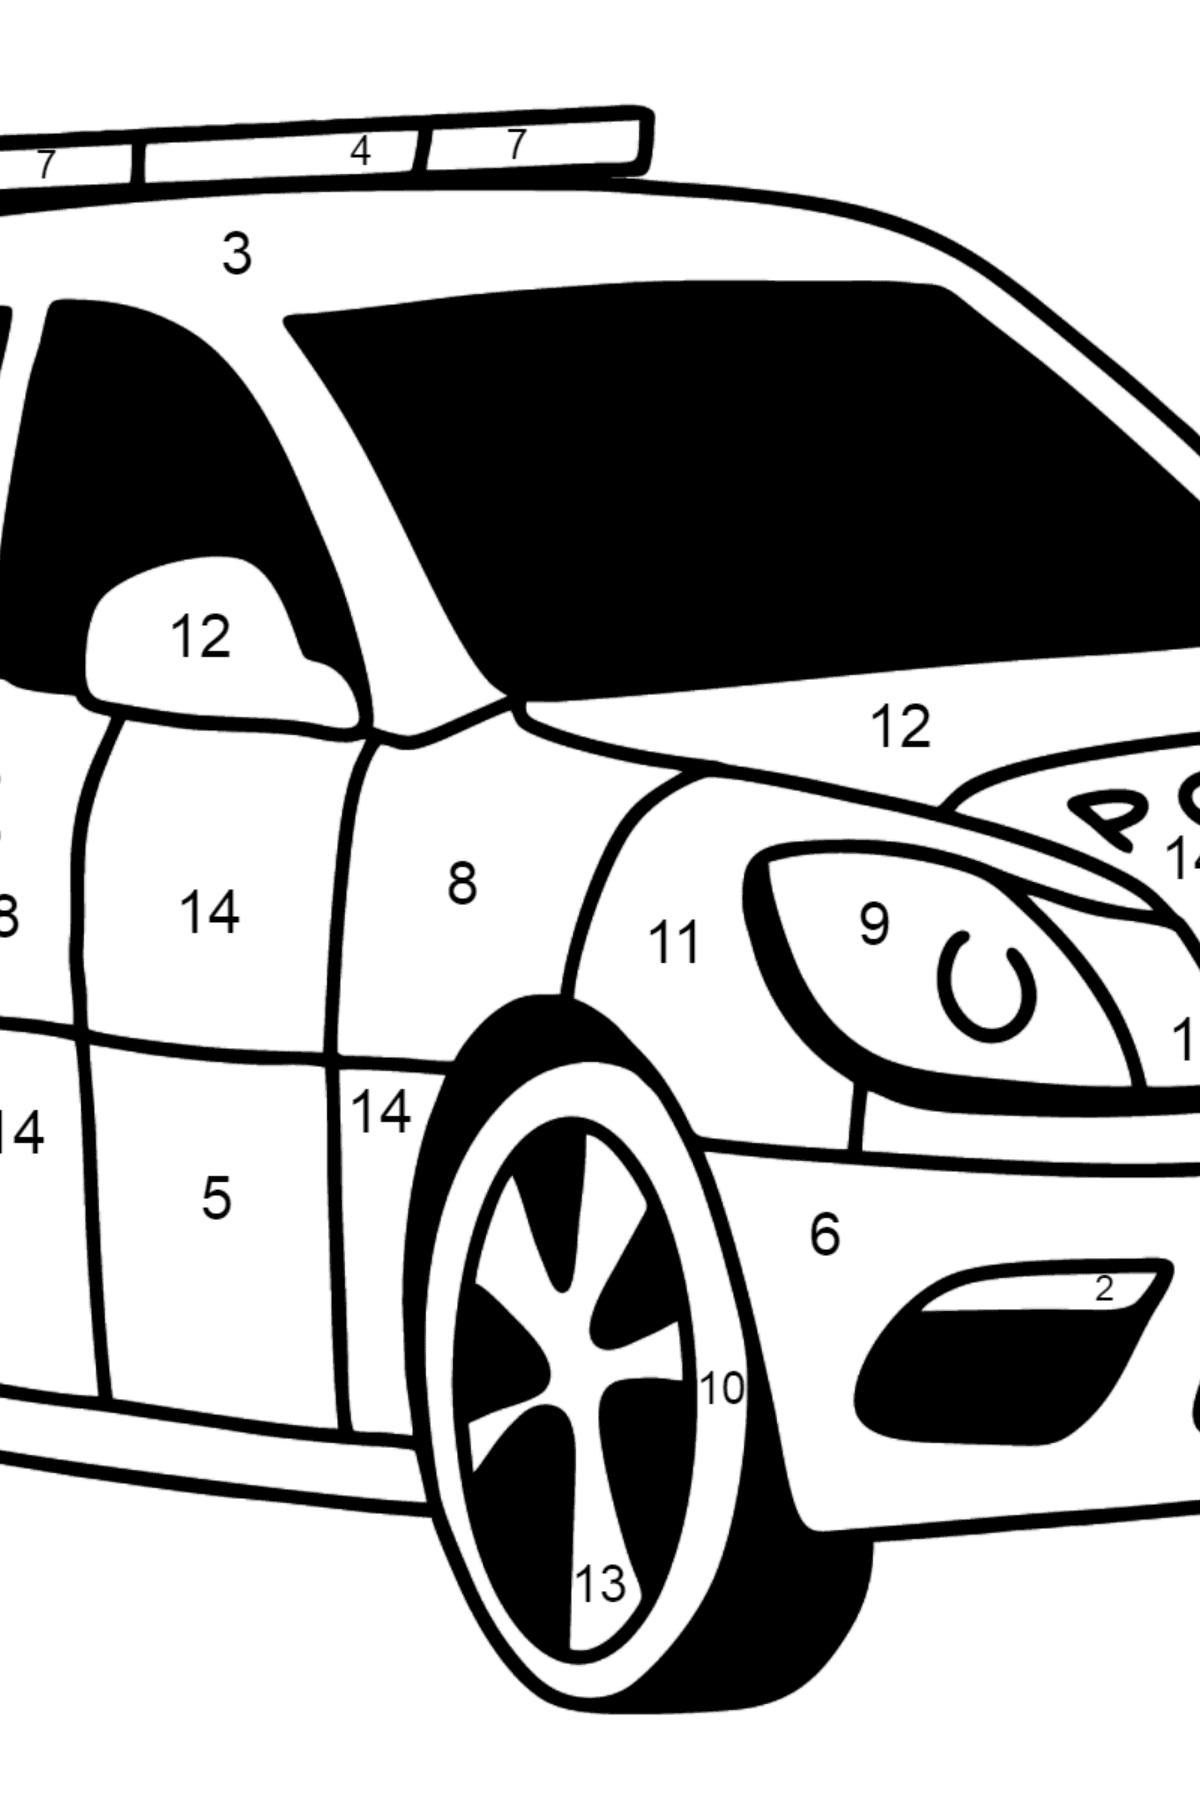 UK Police Car coloring page - Coloring by Numbers for Kids